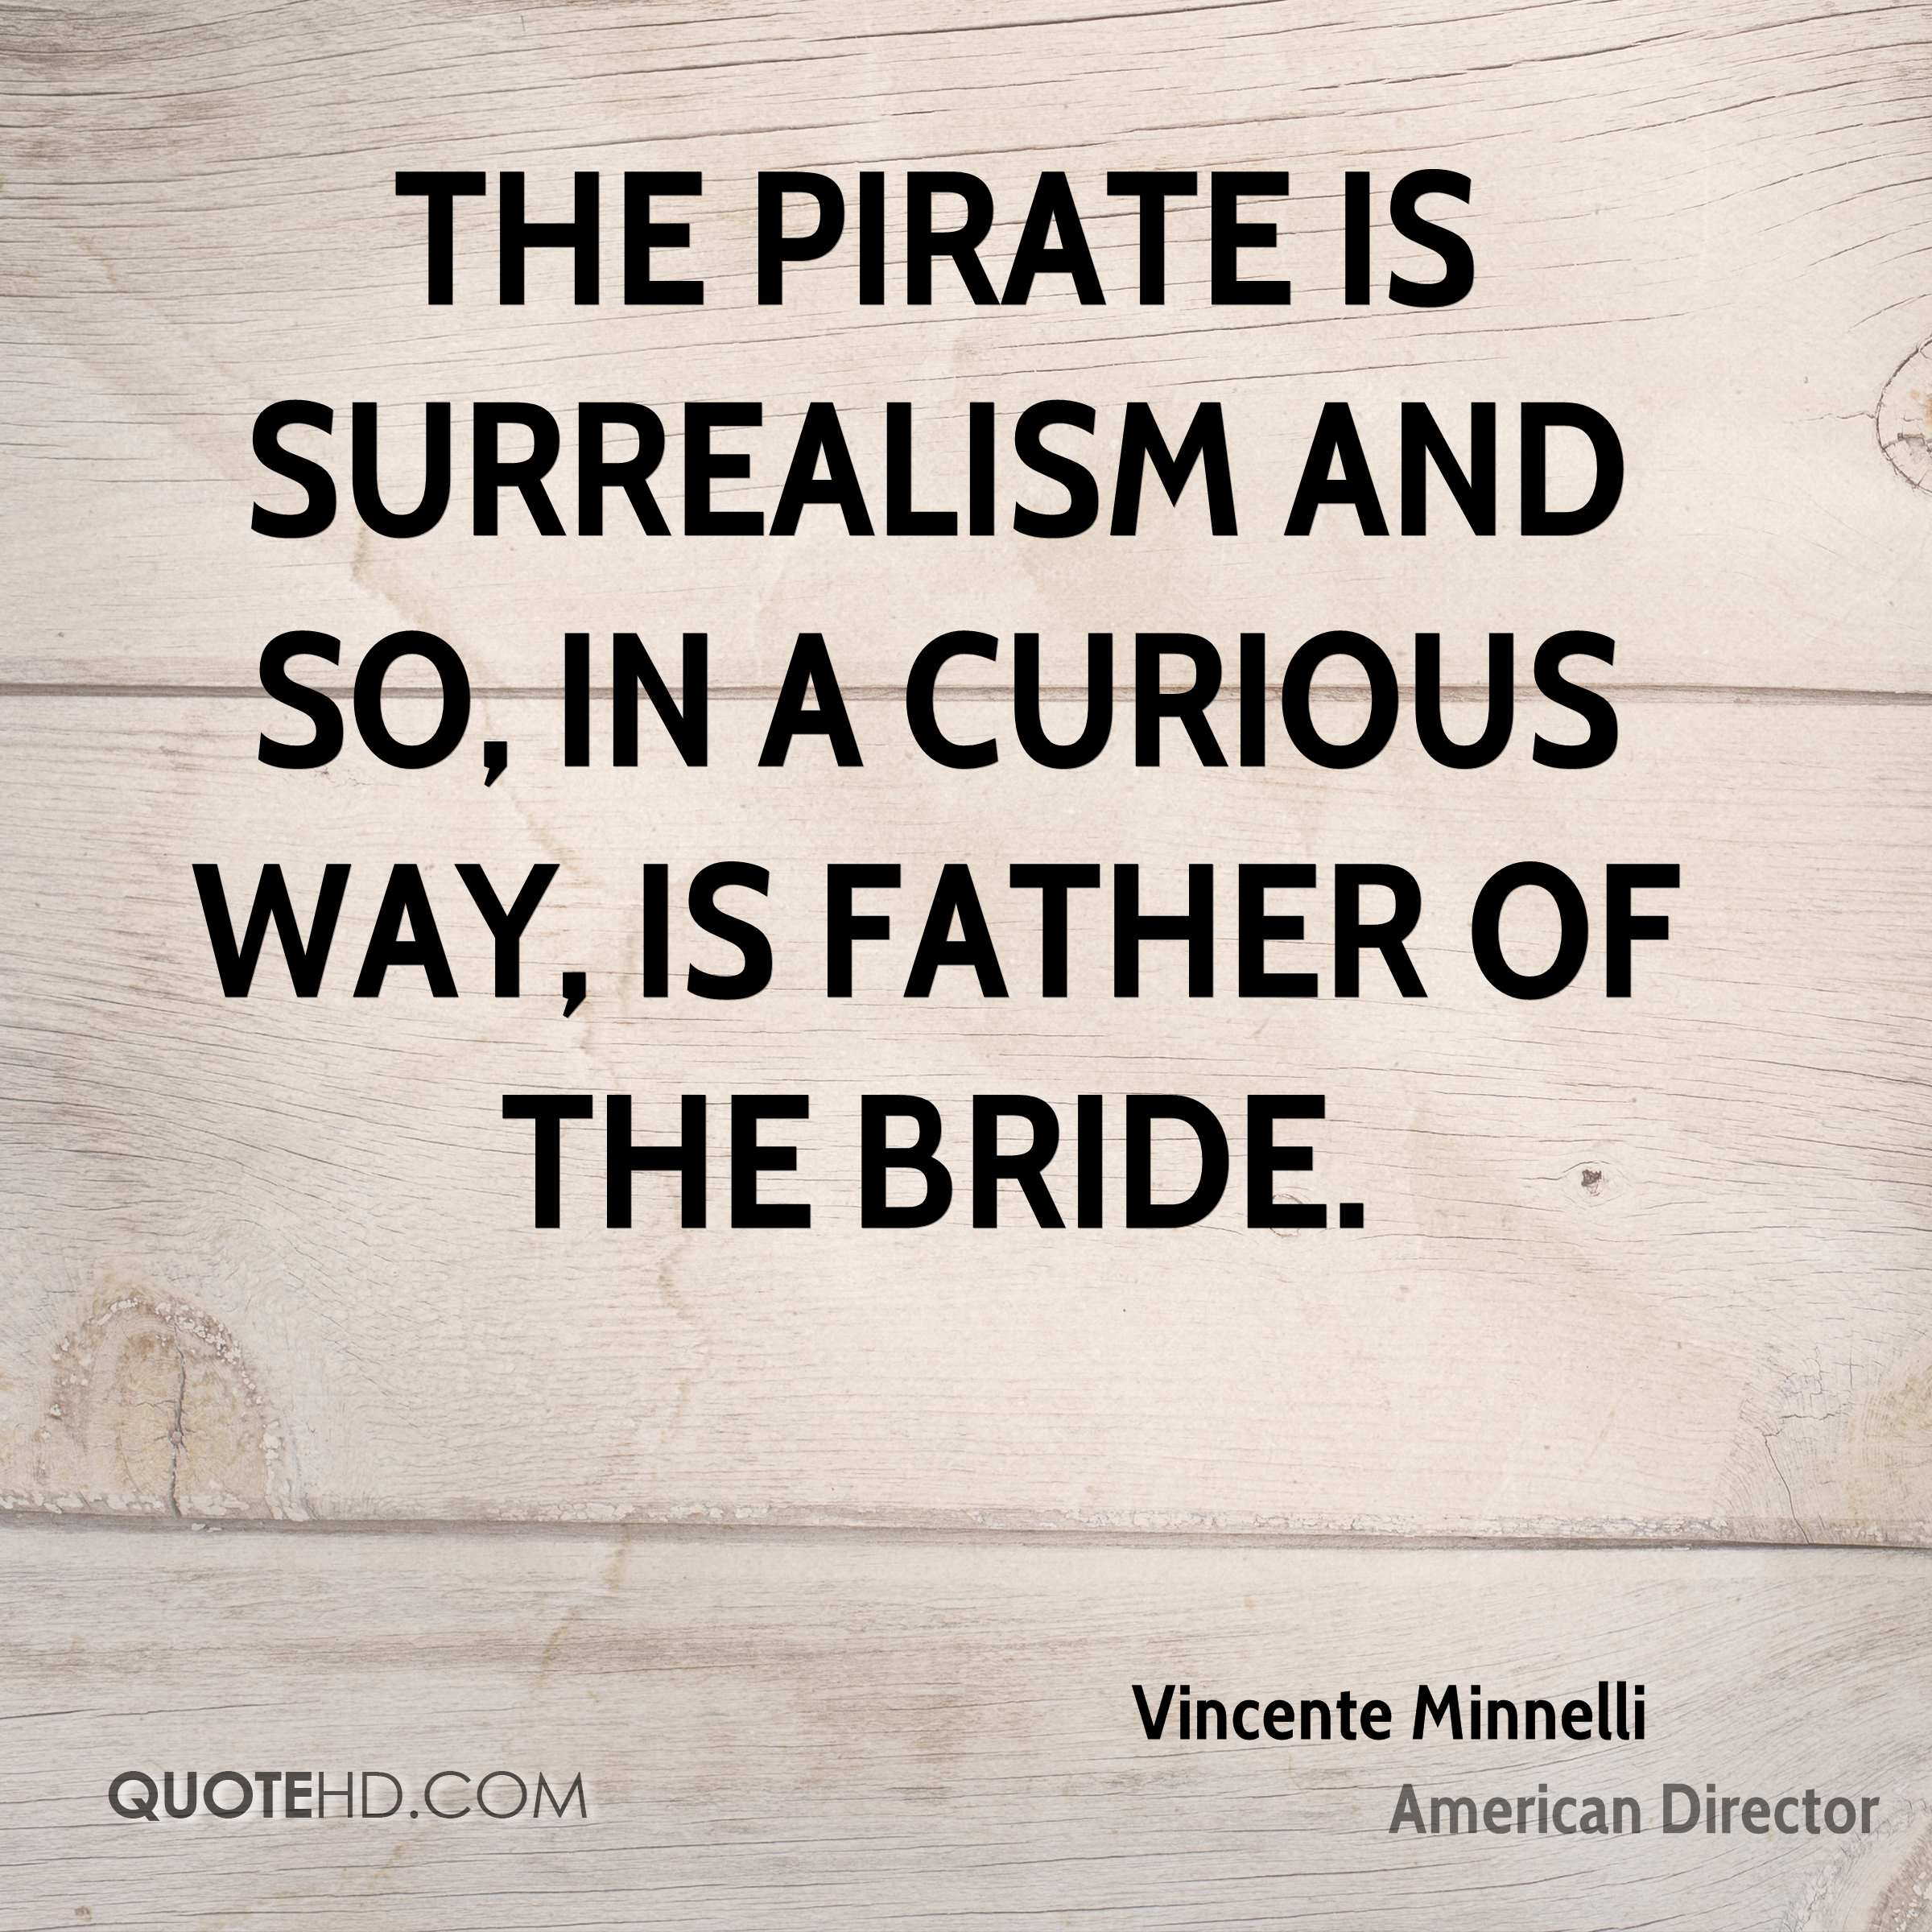 The Pirate is surrealism and so, in a curious way, is Father of the Bride.